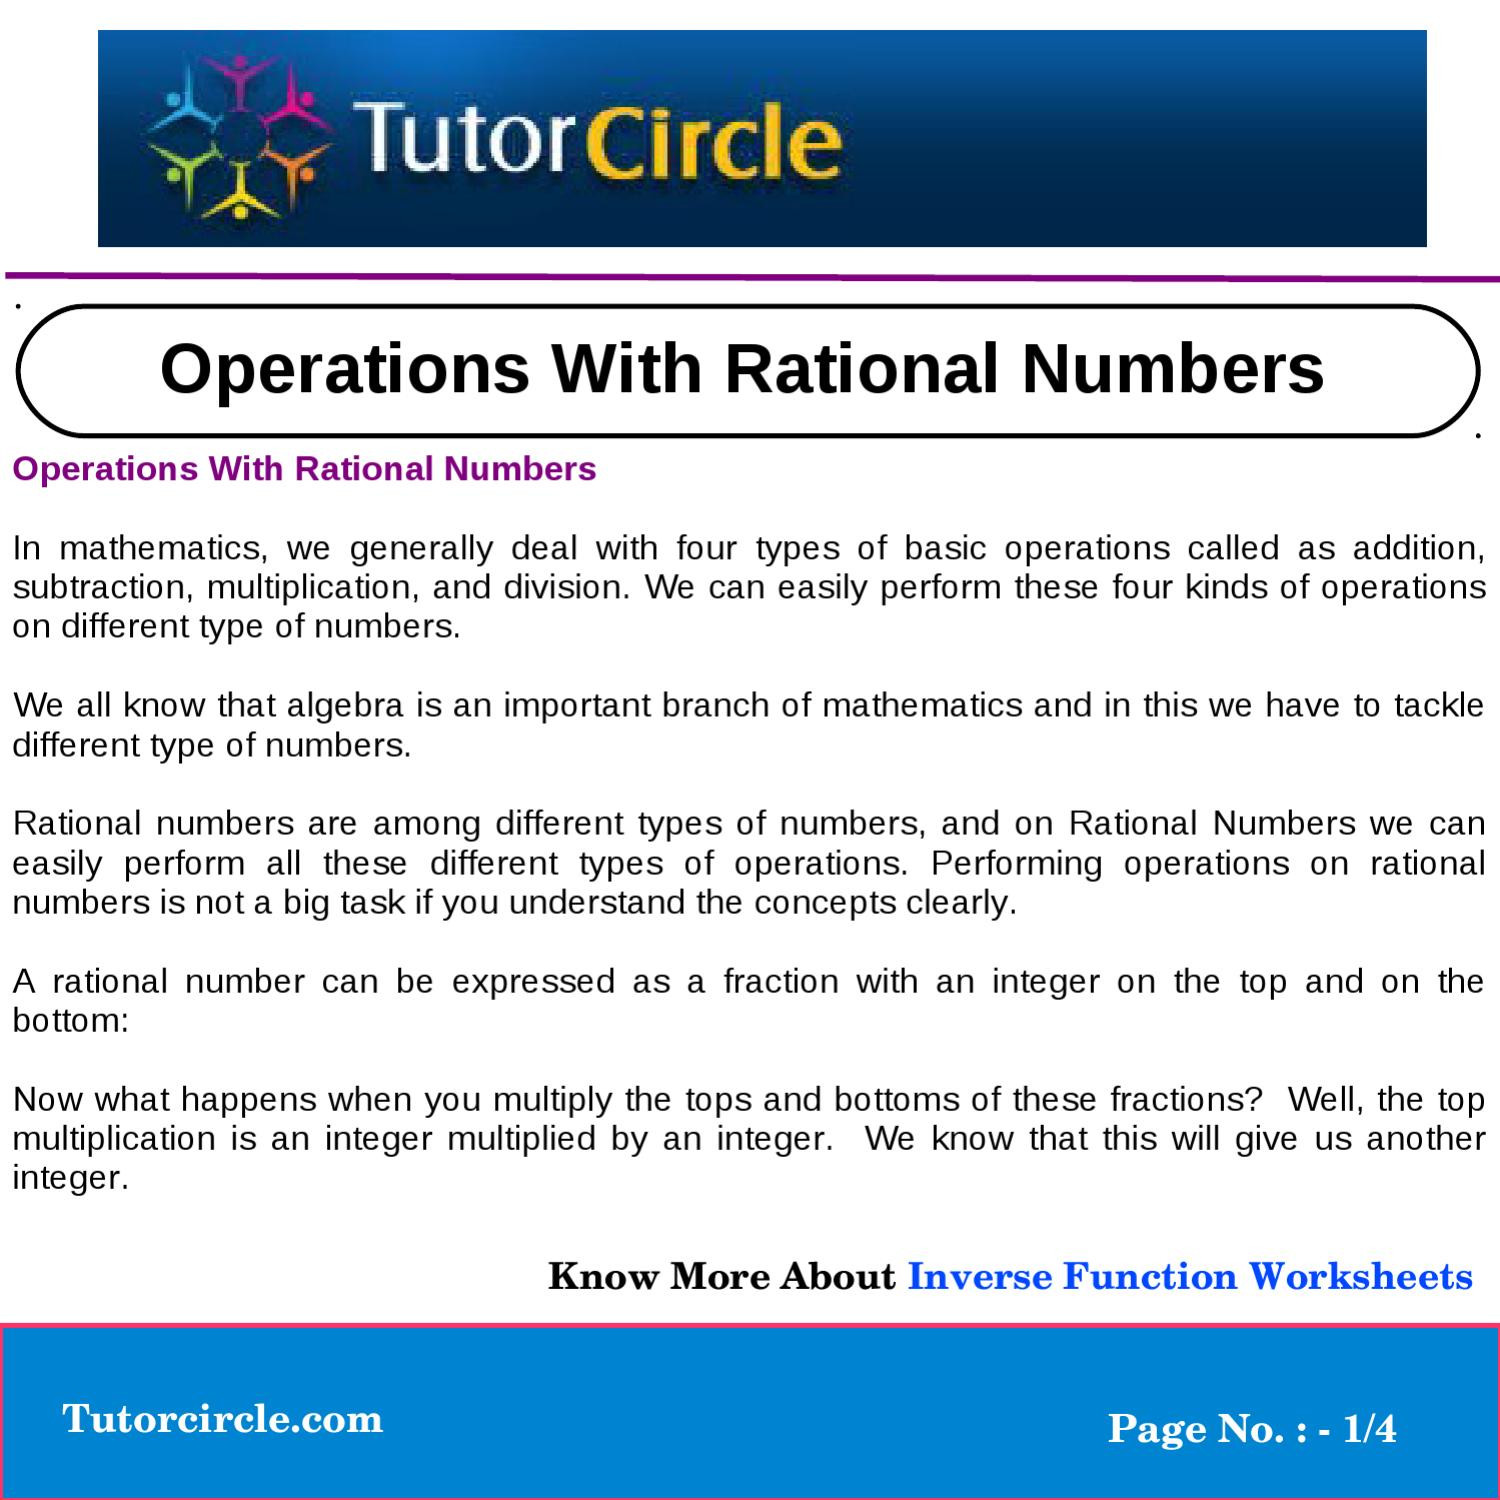 Operations with Rational Numbers Worksheet